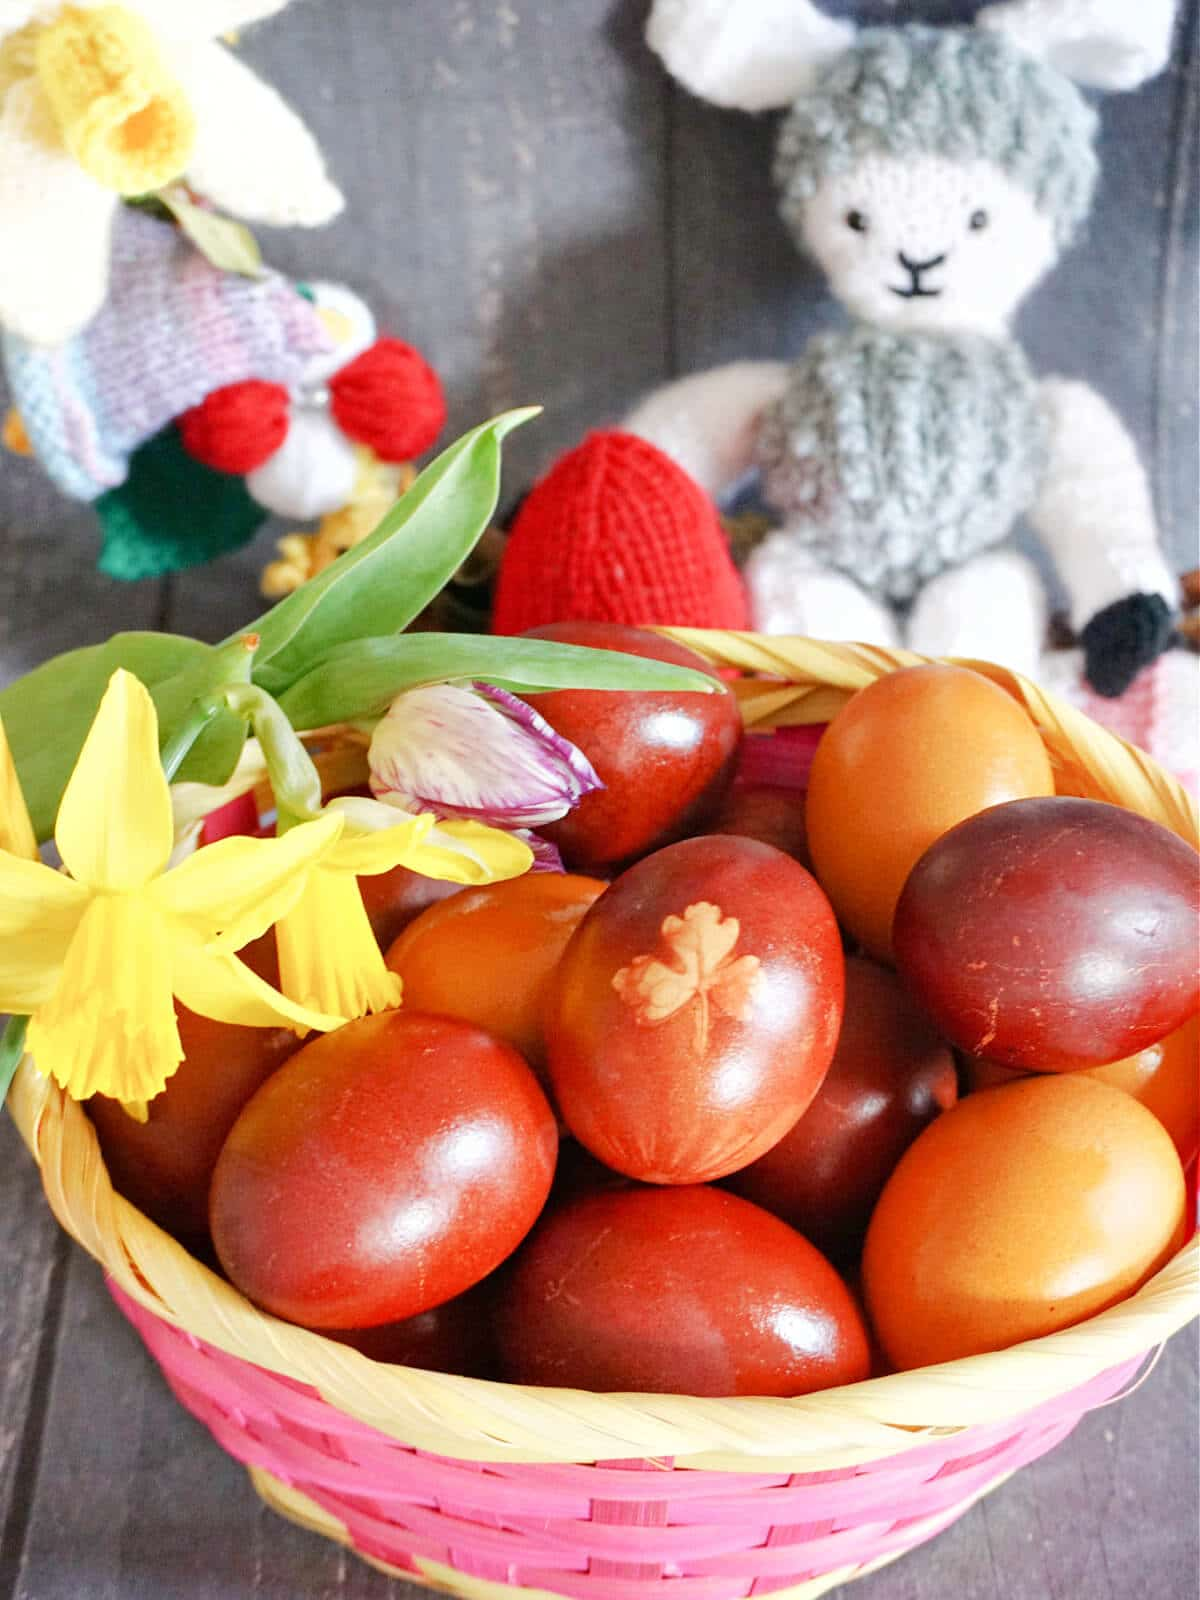 A basket with dyed eggs for Easter